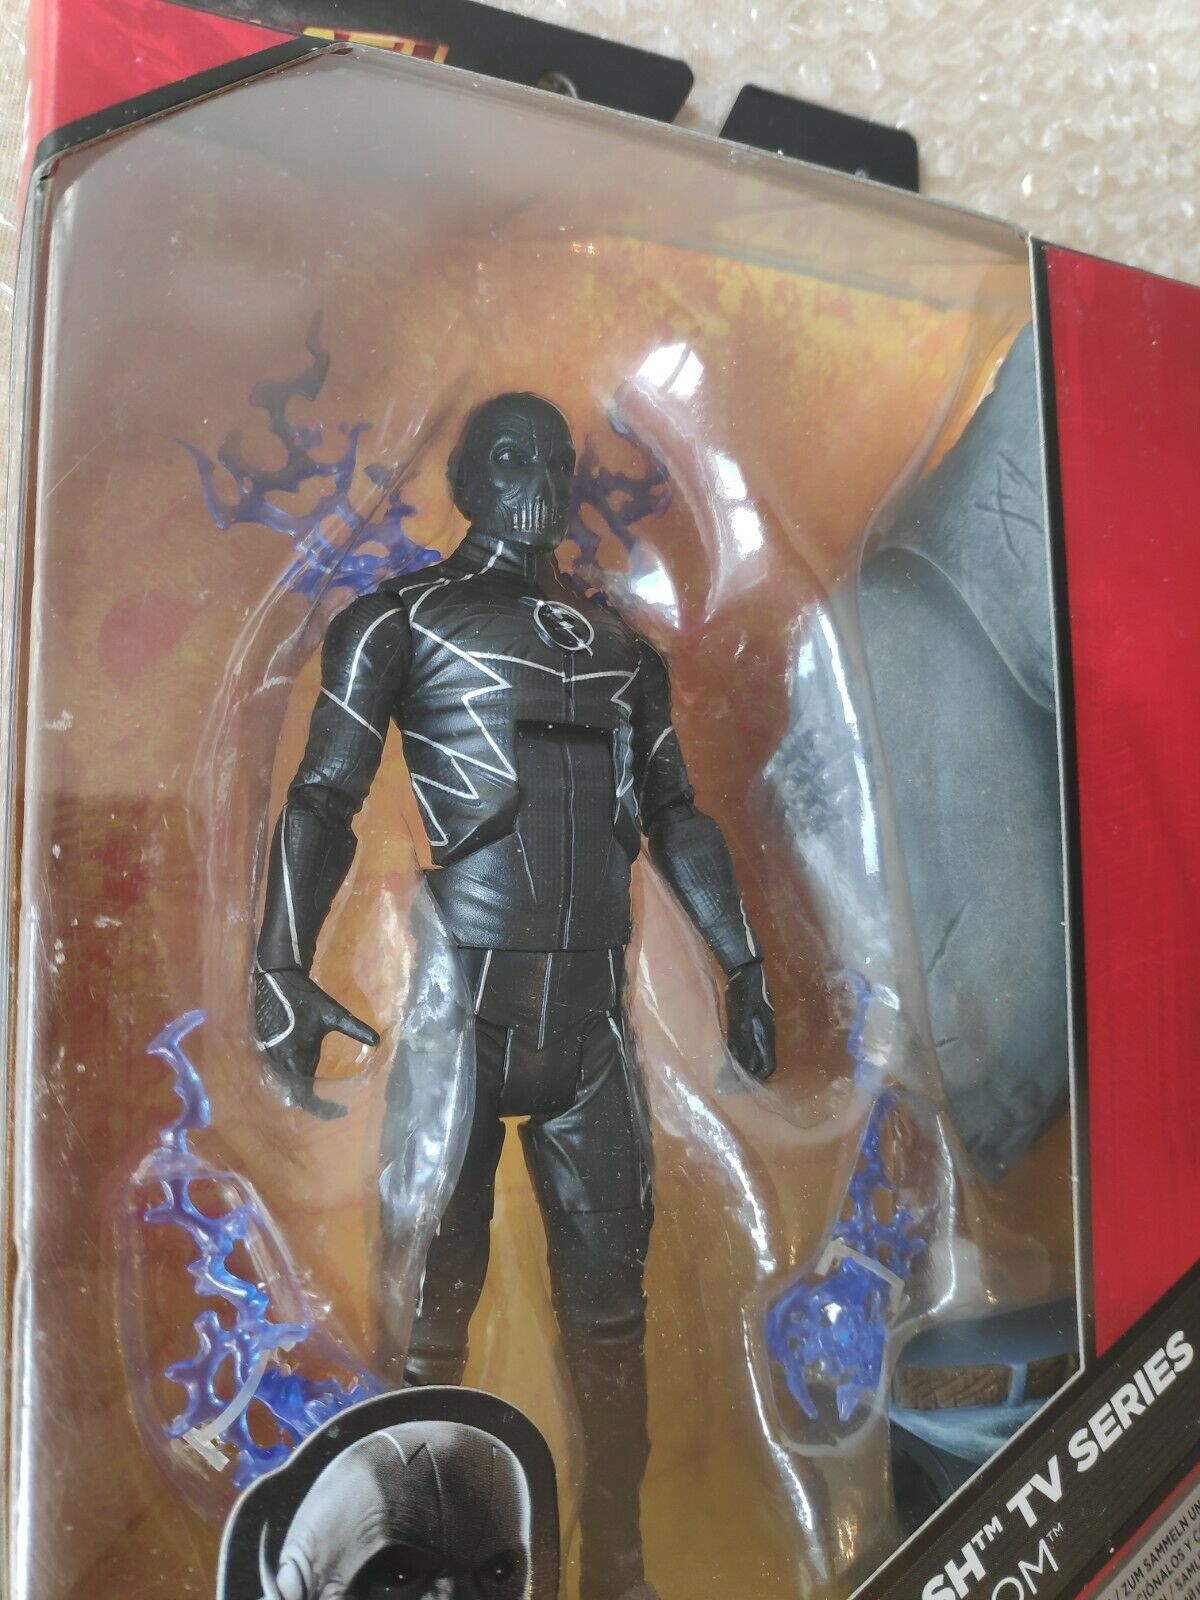 Mattel DC Comics Multiverse Flash TV Series ZOOM ZOOM ZOOM - Aktionfigur 6  15 cm NEU OVP 93d0d4